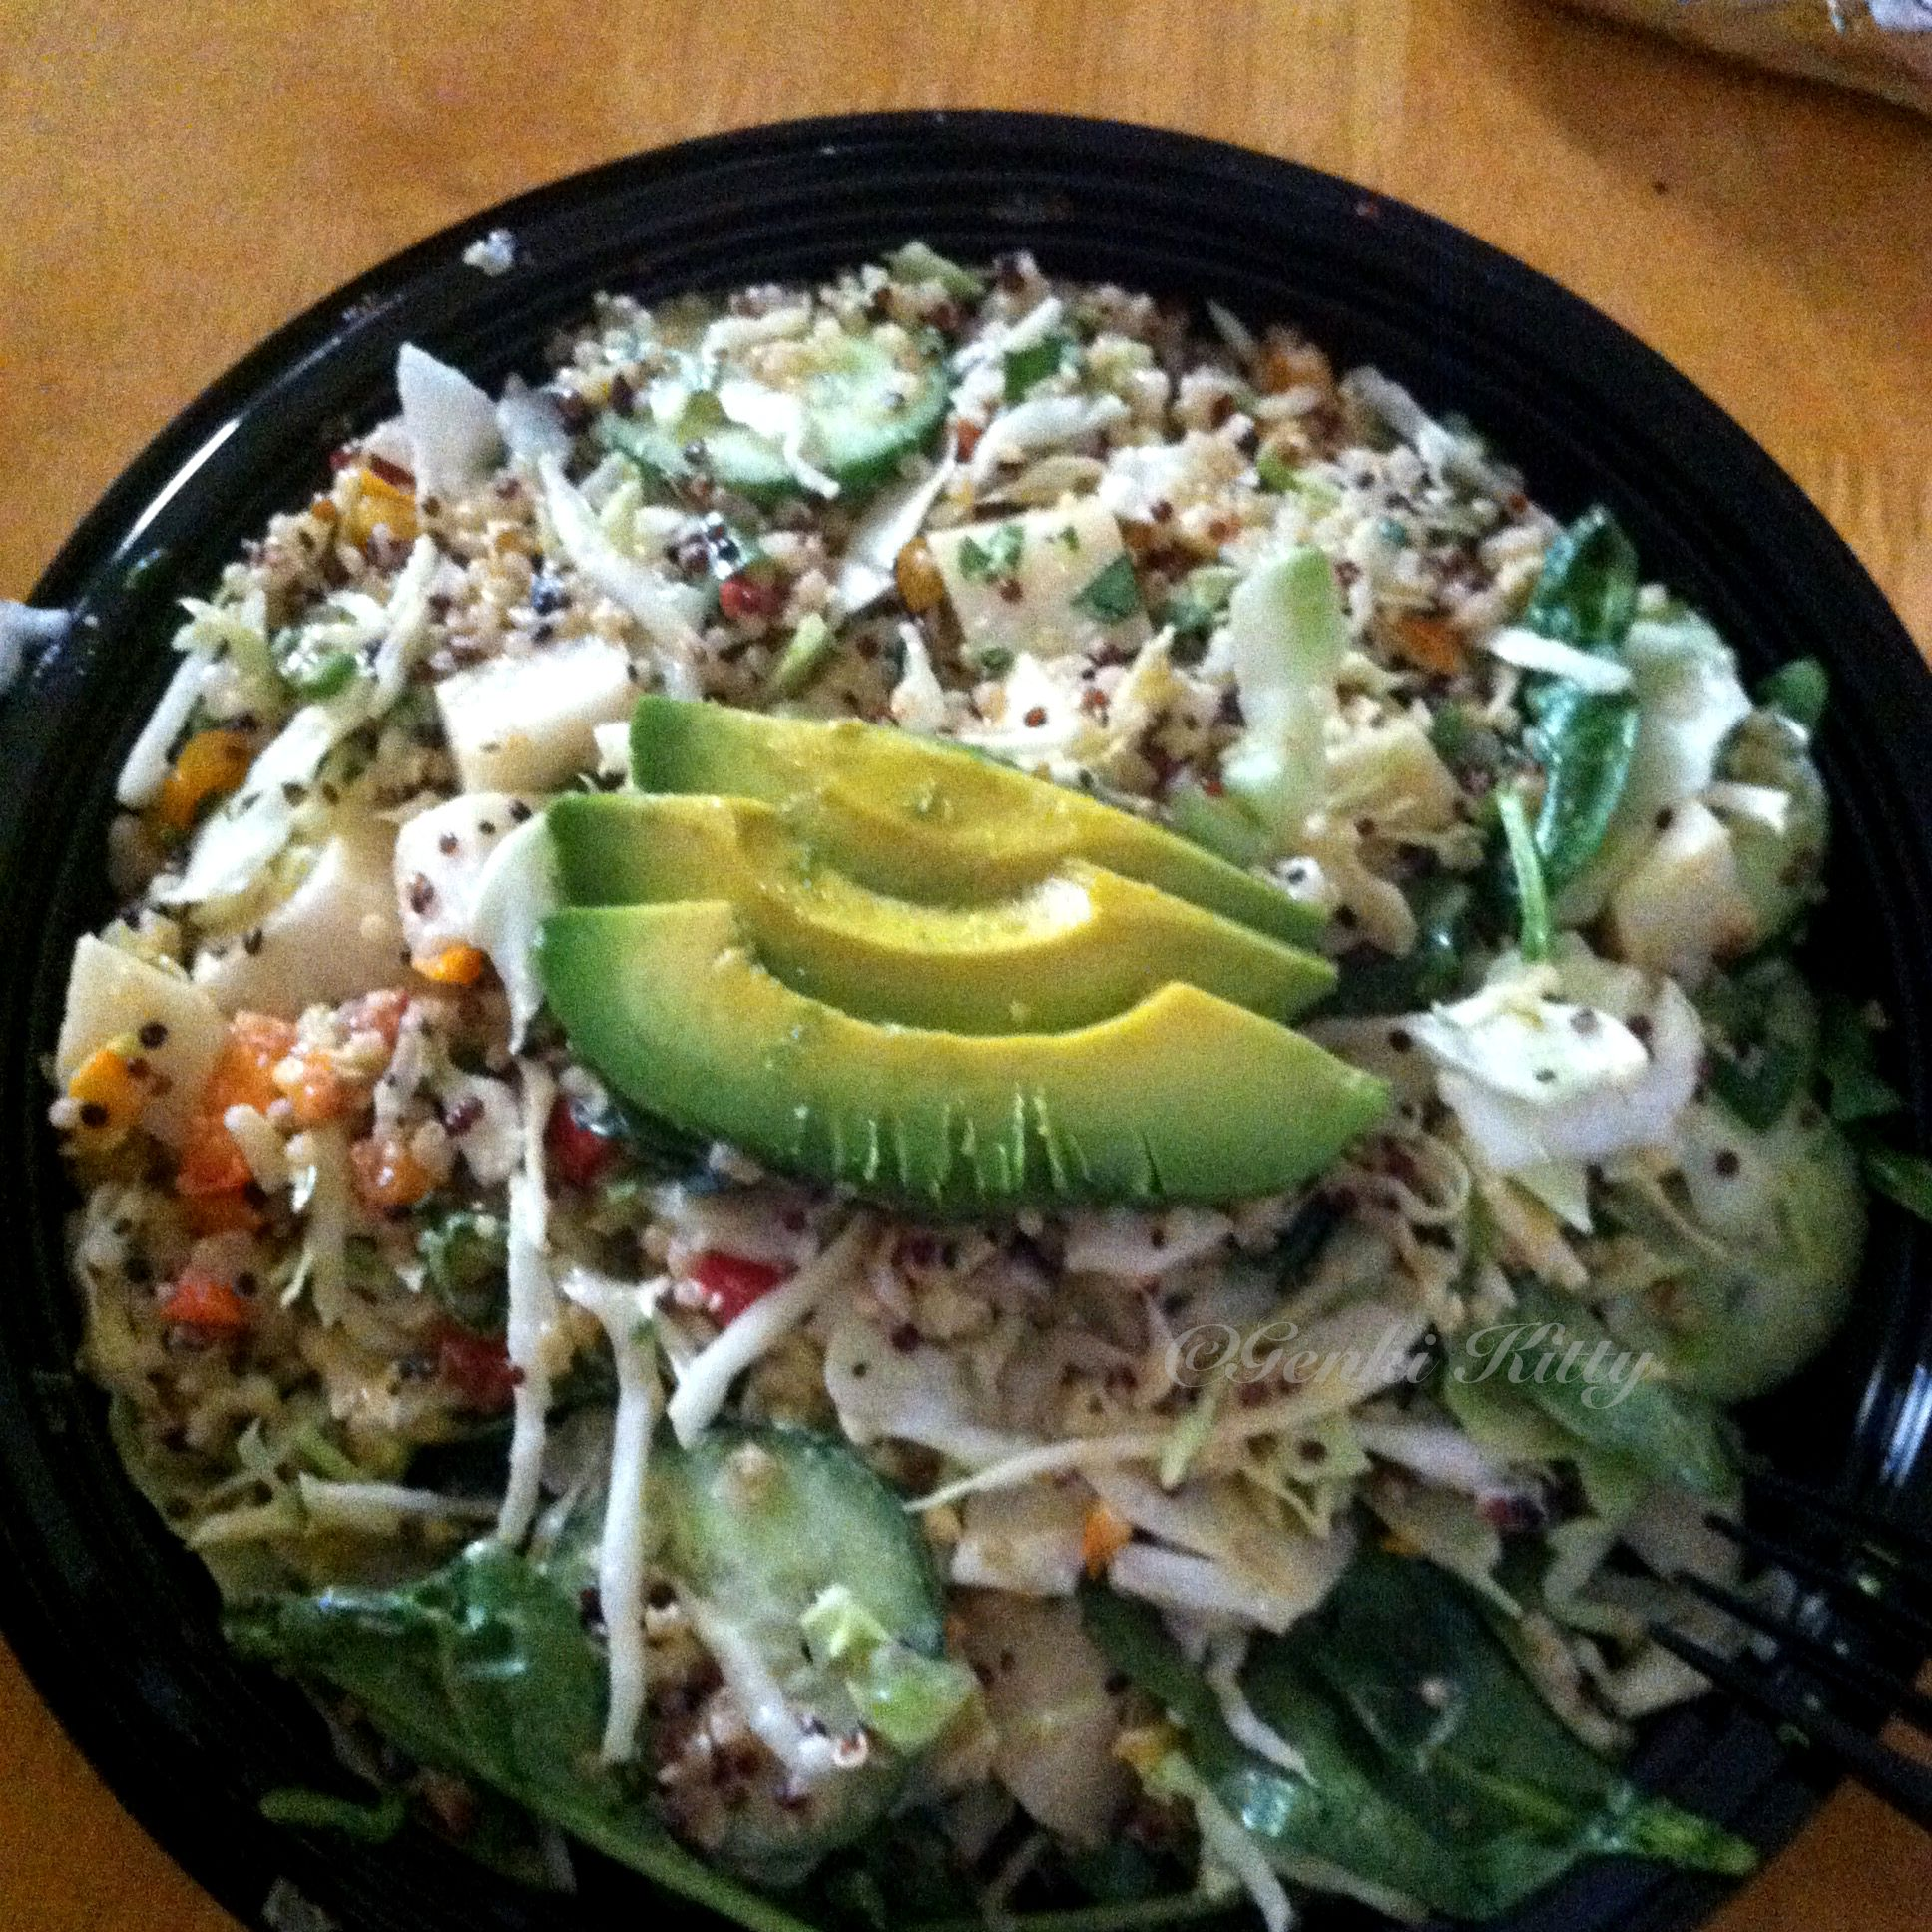 Quinoa Salad- a healthy vegan option at Sharky's Restaurant in Southern California.